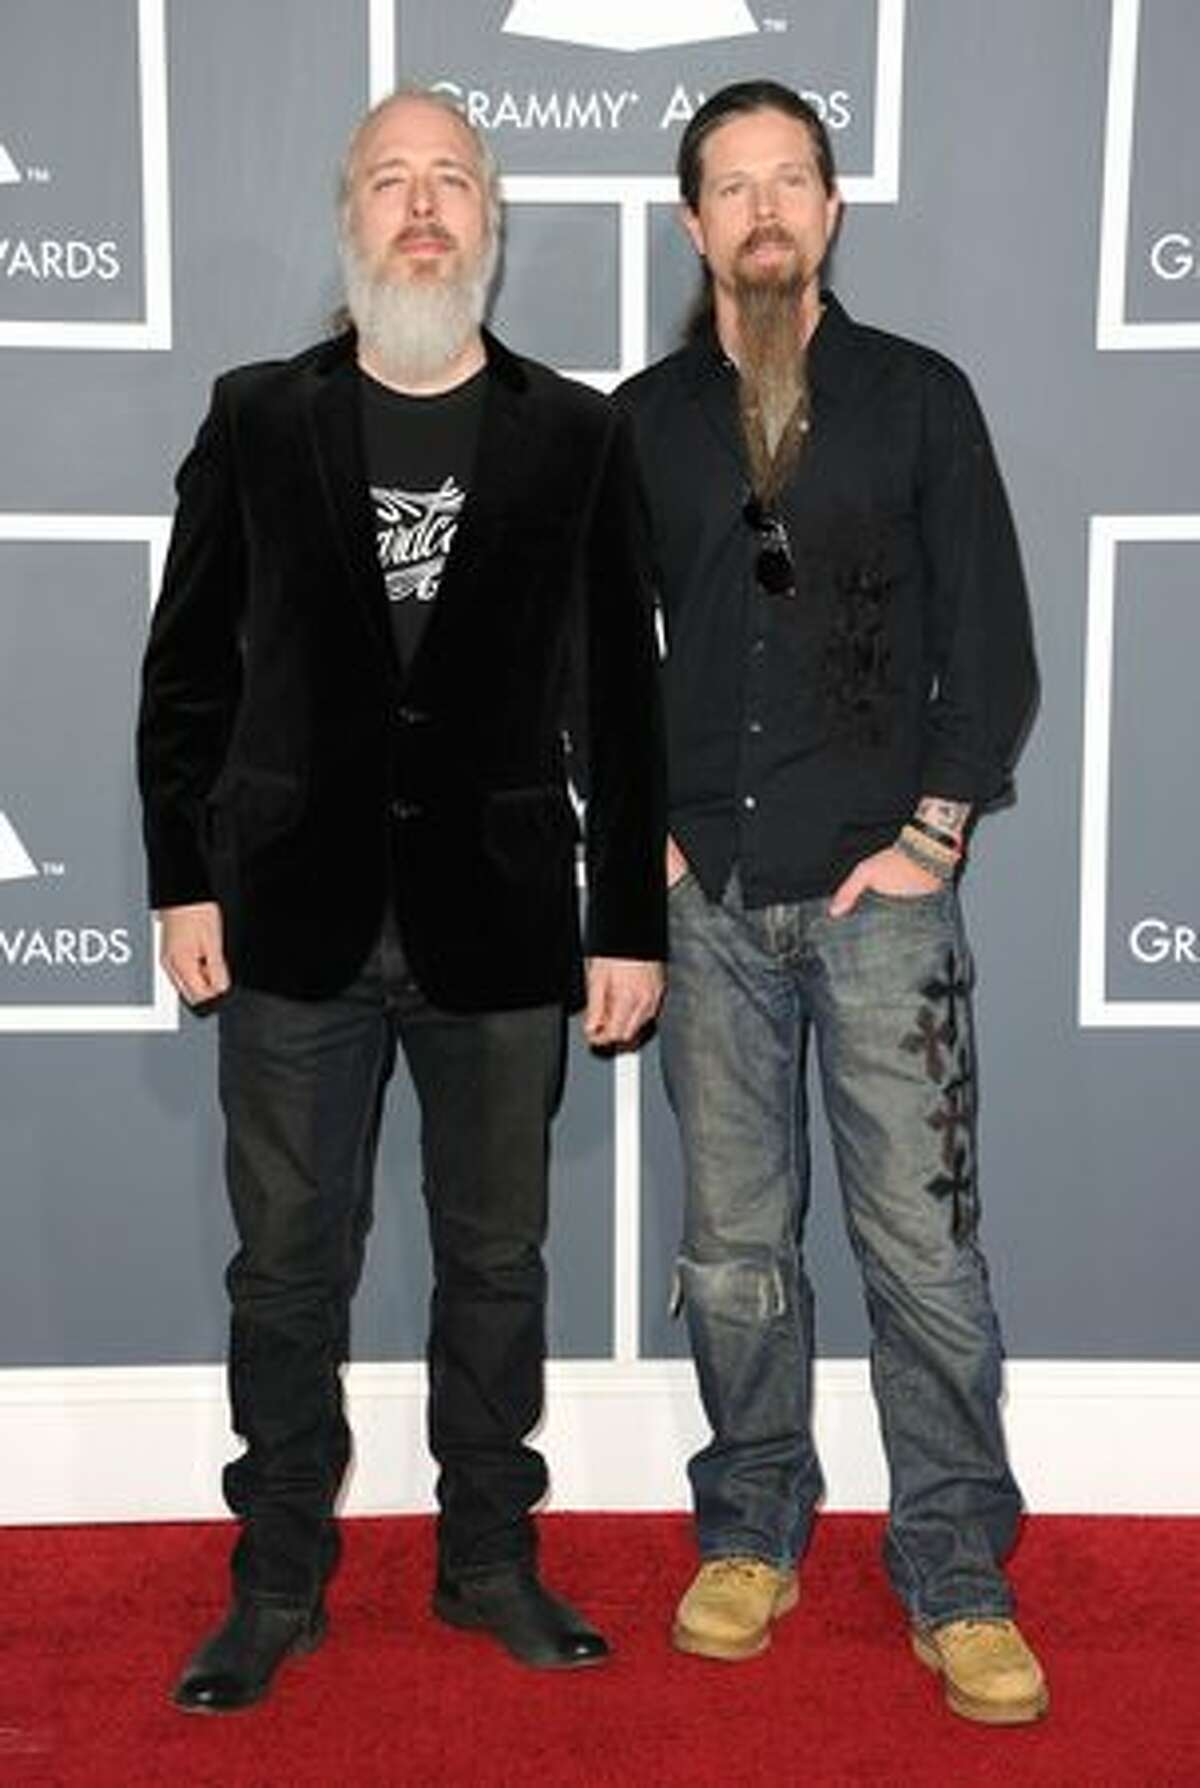 Lamb of God band members John Campbell and Chris Adler arrive at The 53rd Annual GRAMMY Awards held at Staples Center in Los Angeles, California.